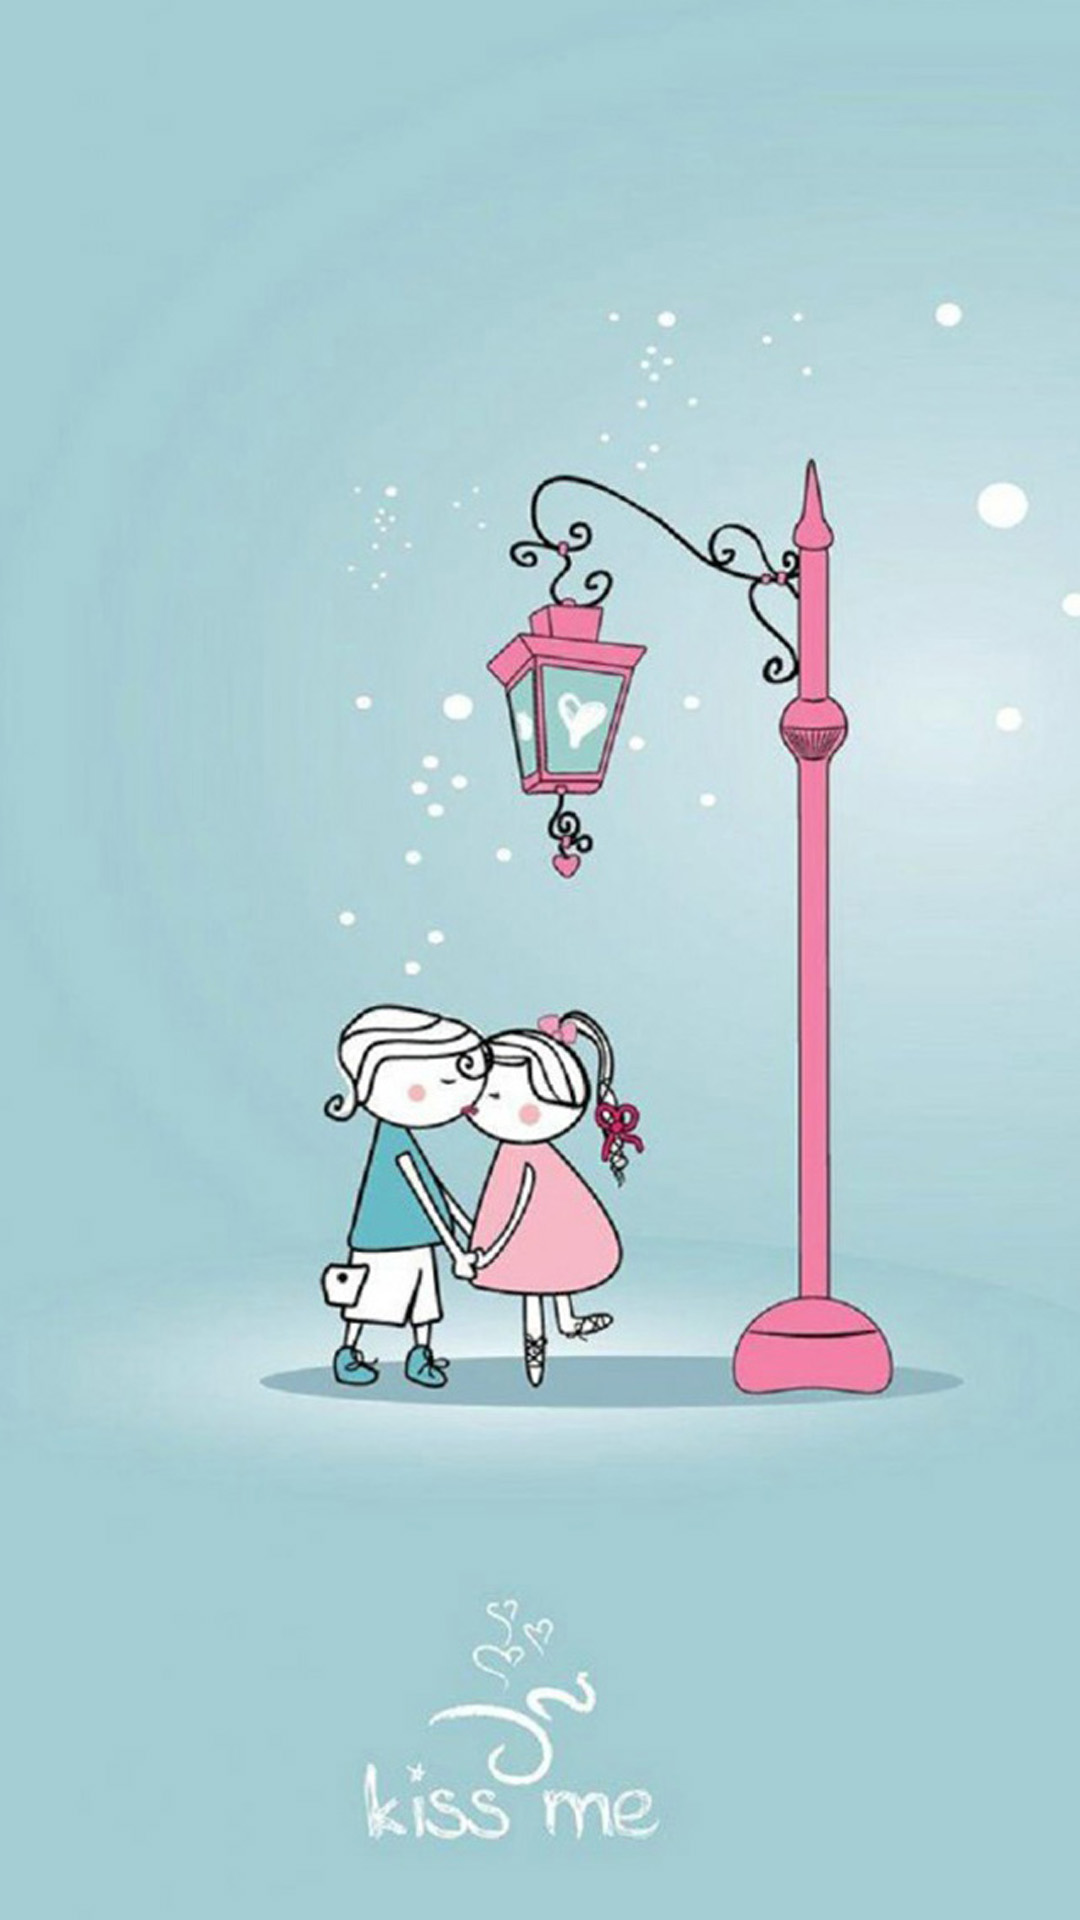 cartoon Type Love Wallpaper : couples iPhone Wallpapers - WallpaperSafari